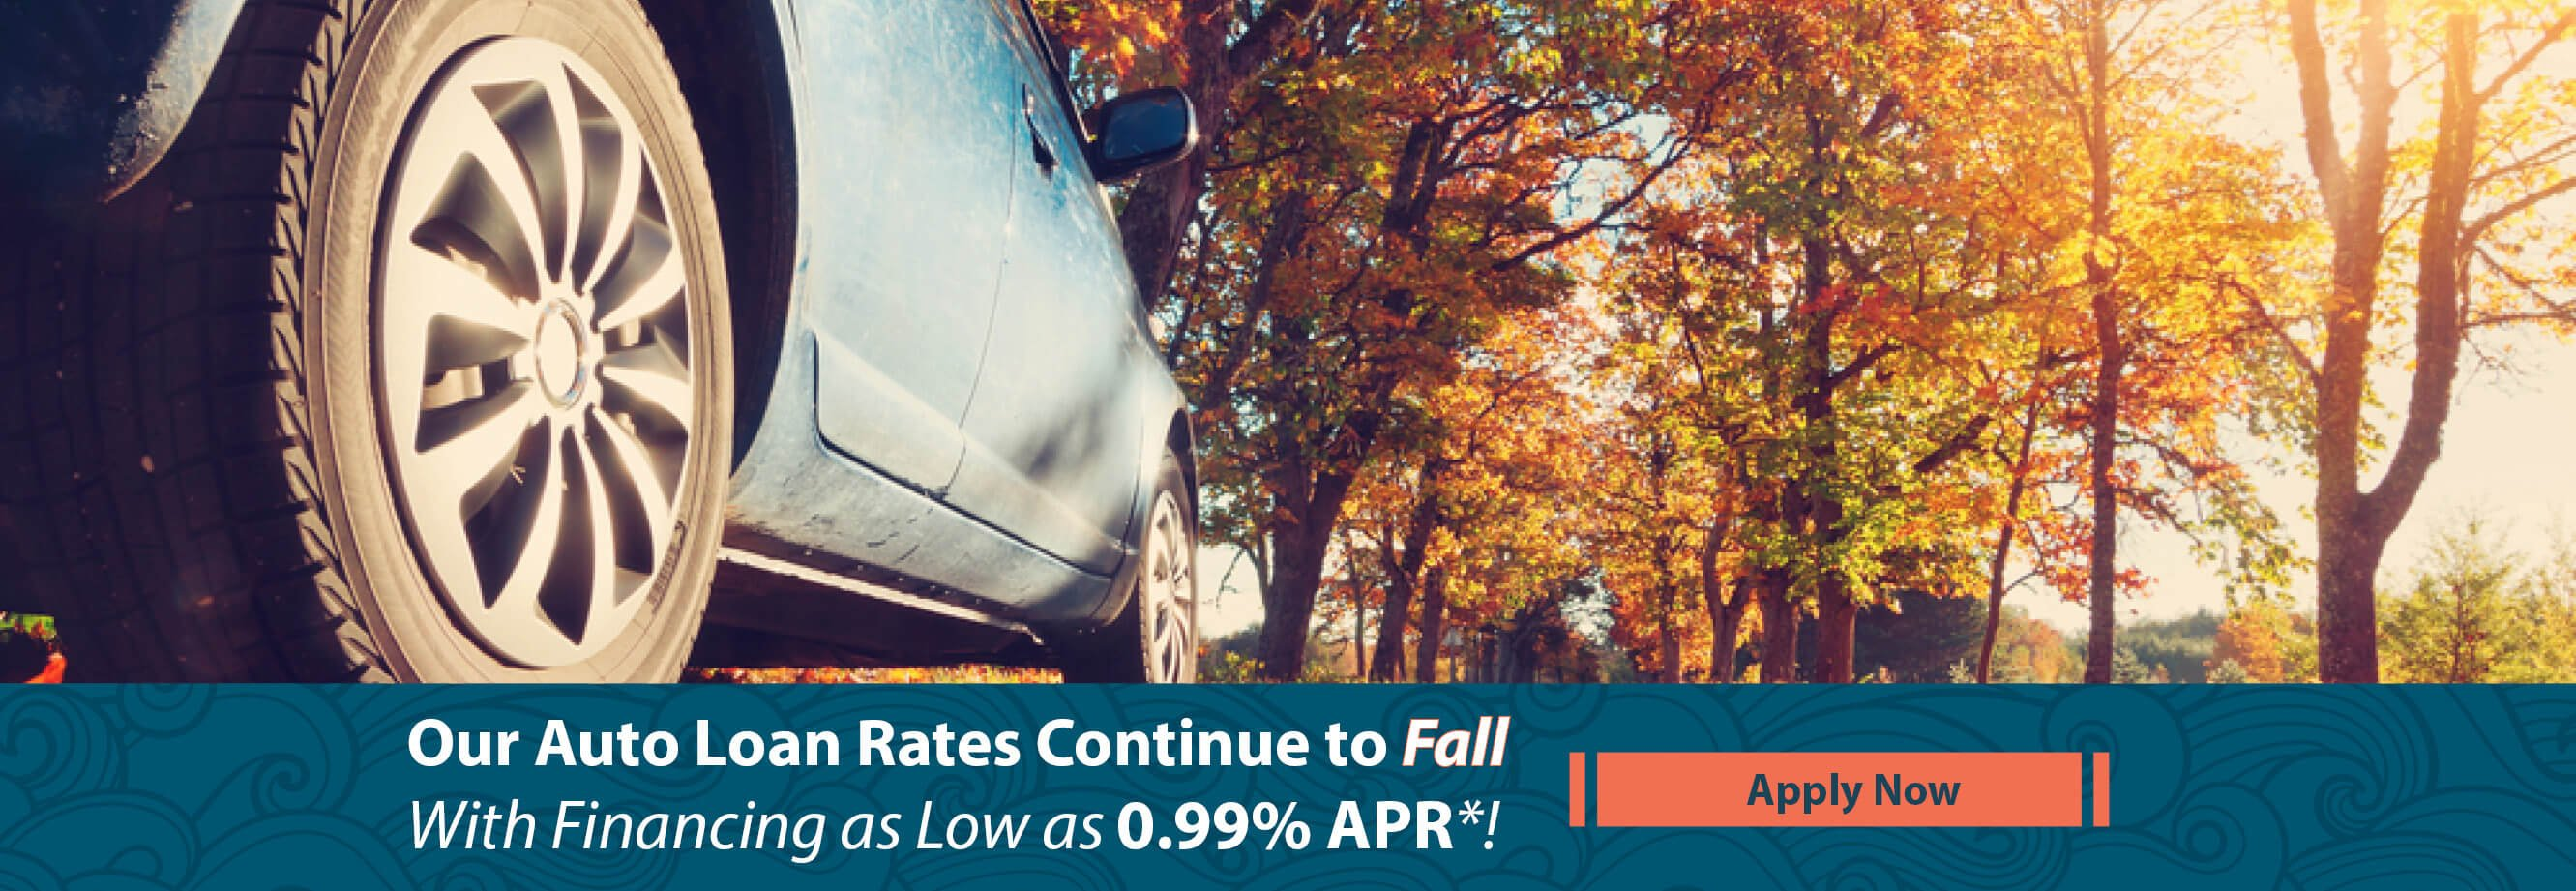 Our Auto Loan Rates Continue to Fall with Financing as Low as .99% APR